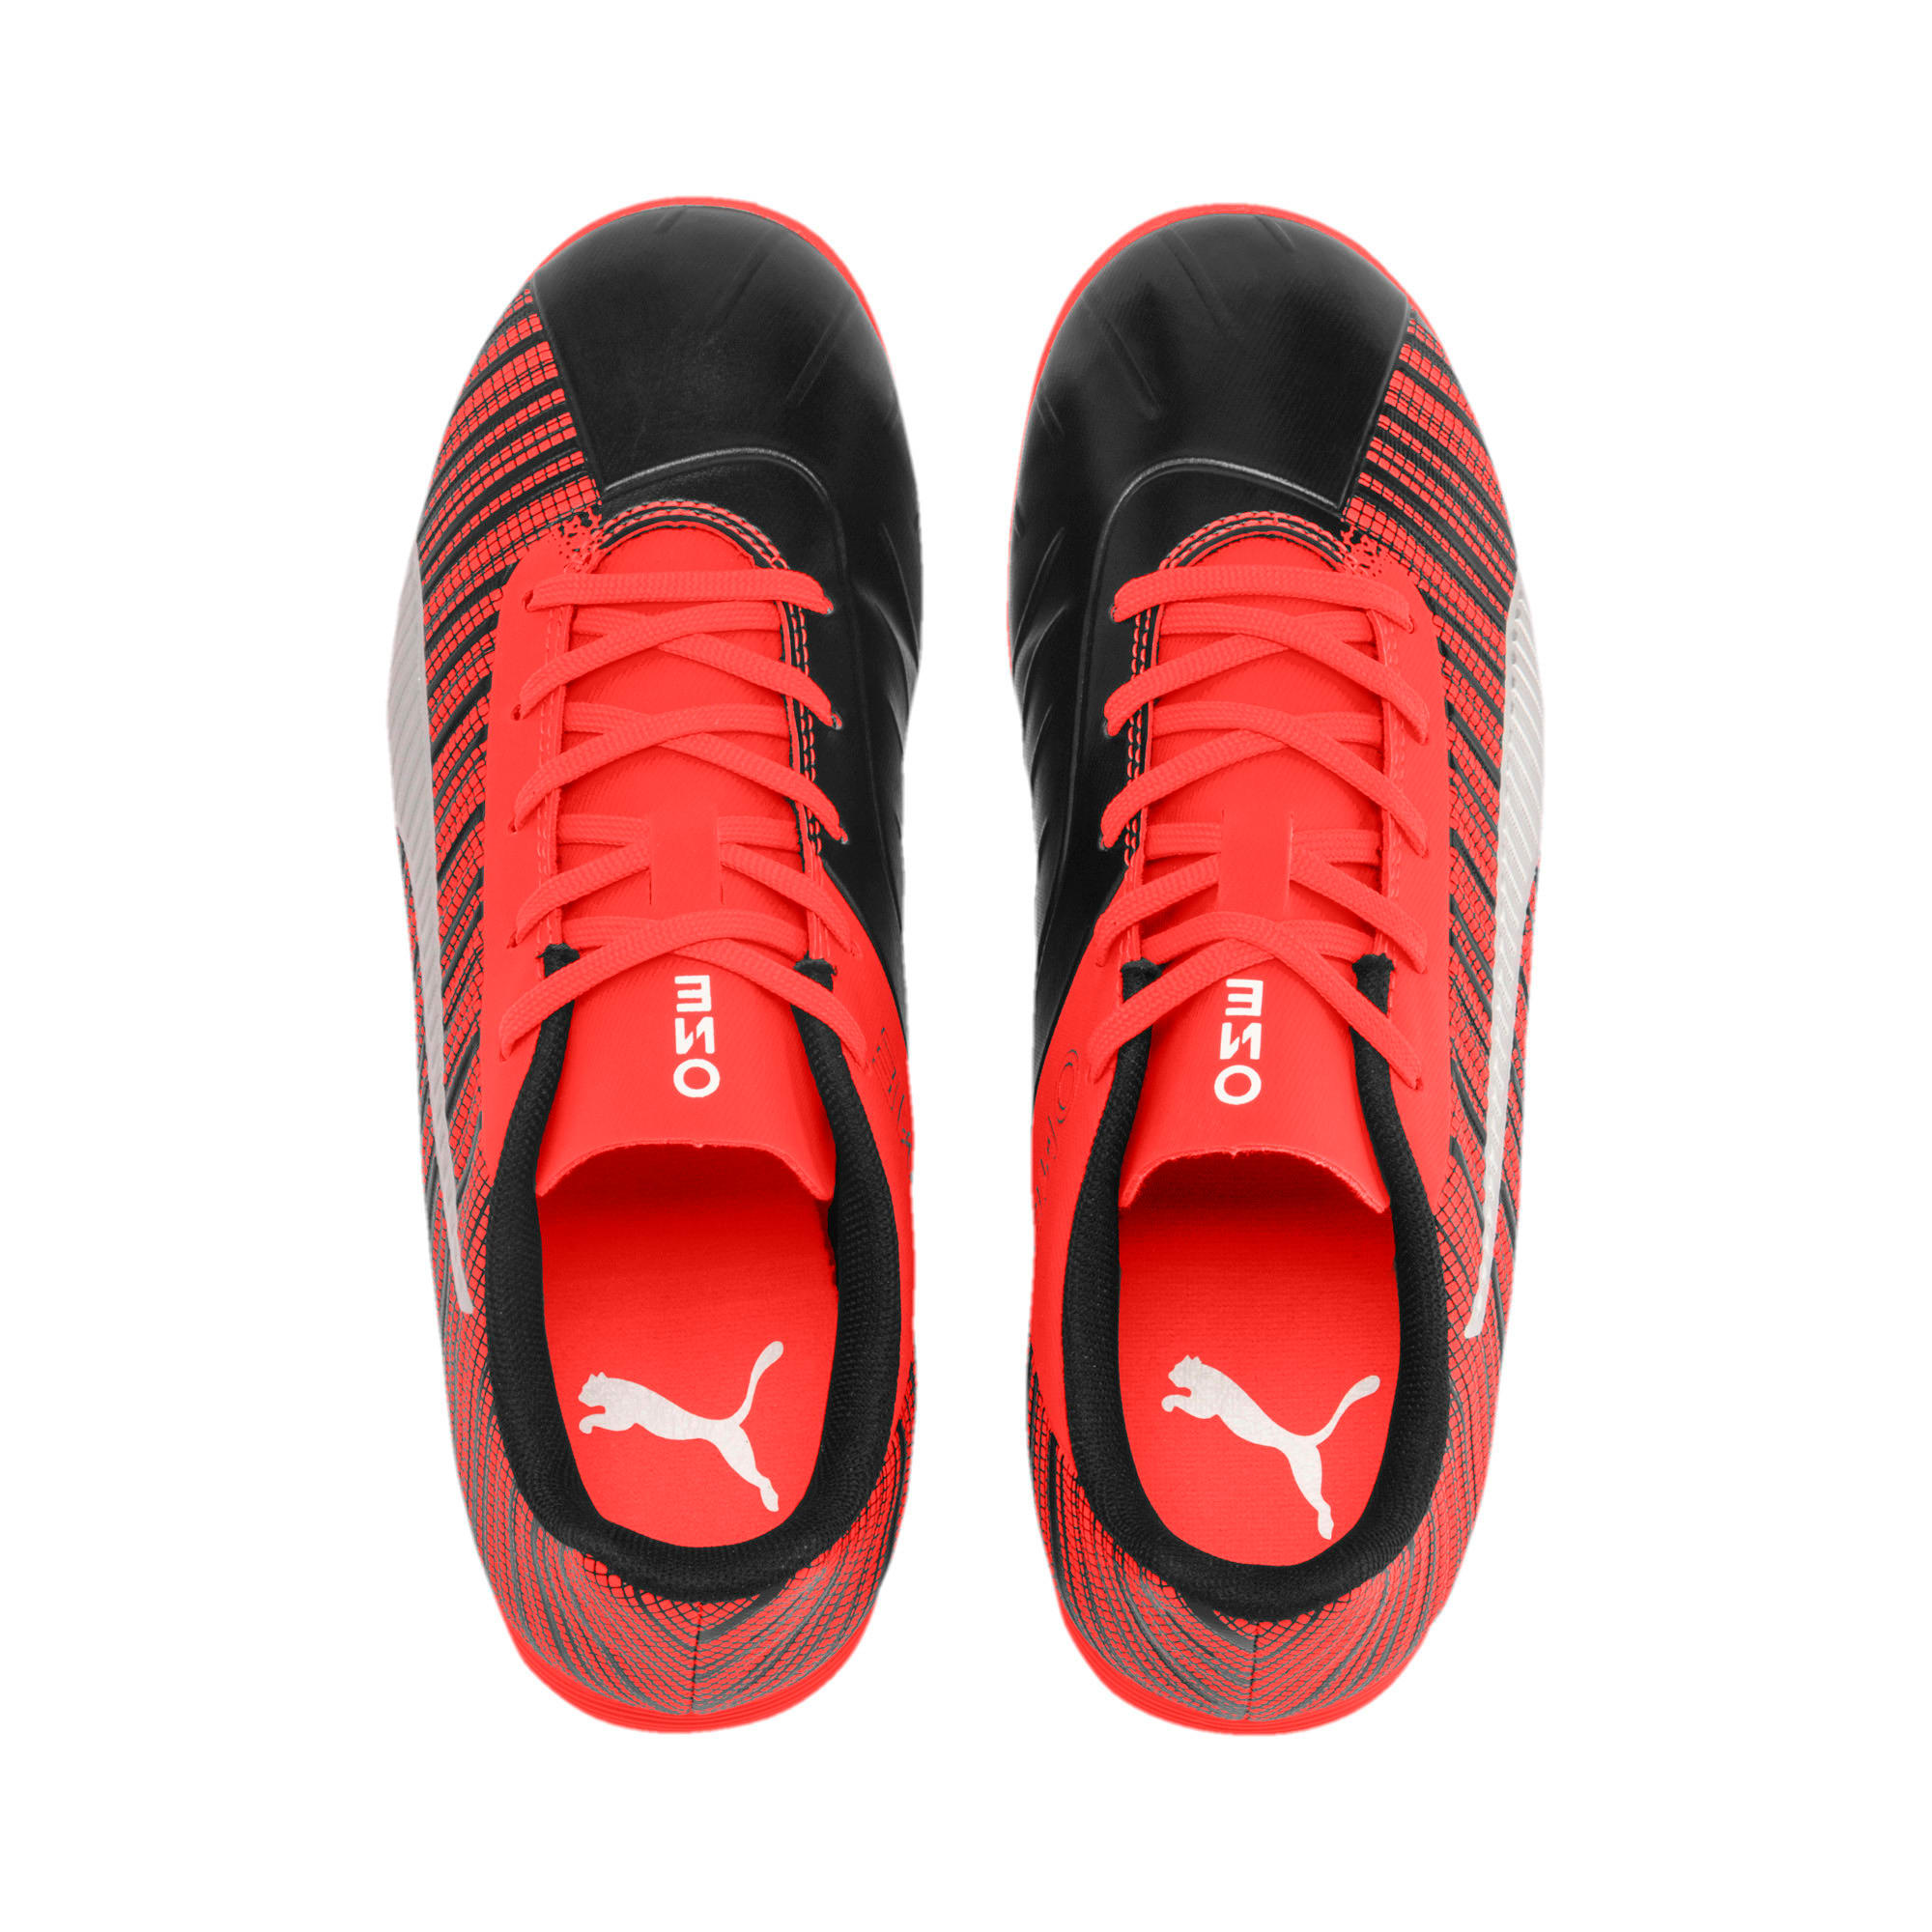 Thumbnail 2 of PUMA ONE 5.4 IT Youth Football Boots, Black-Nrgy Red-Aged Silver, medium-IND